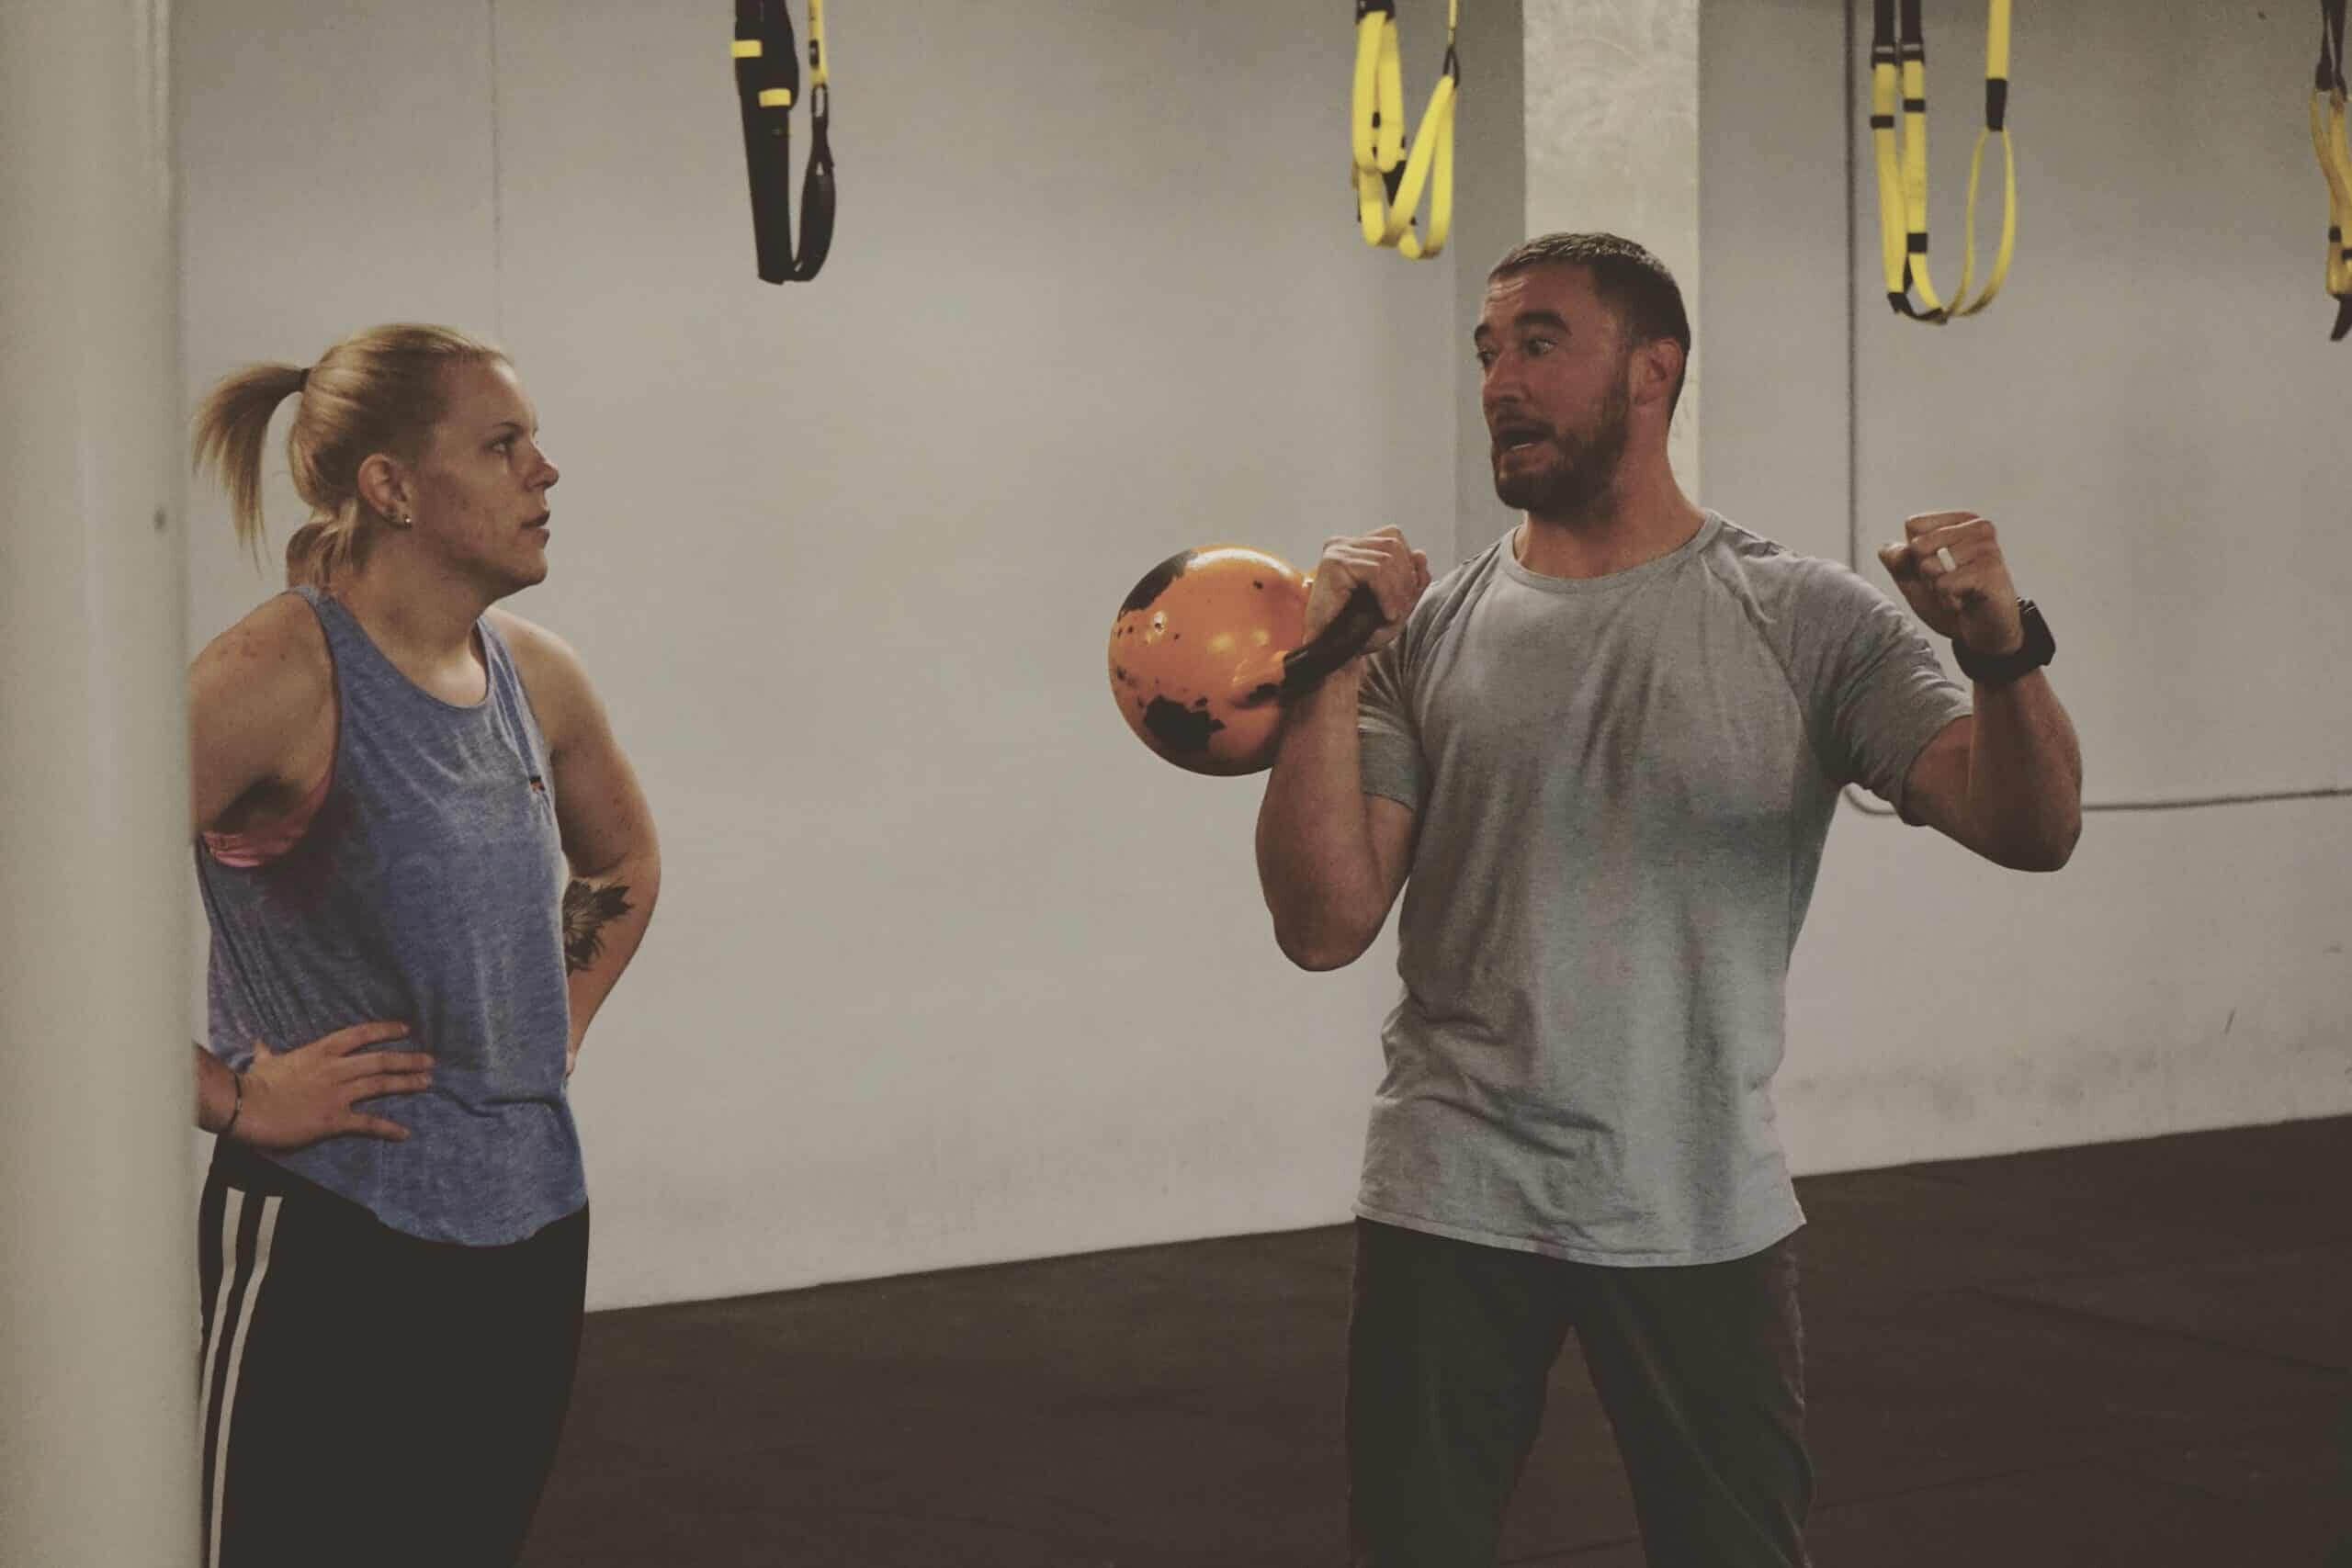 Spark Fitness member in a kettlebell training session with fitness coach Kevin Byrnes